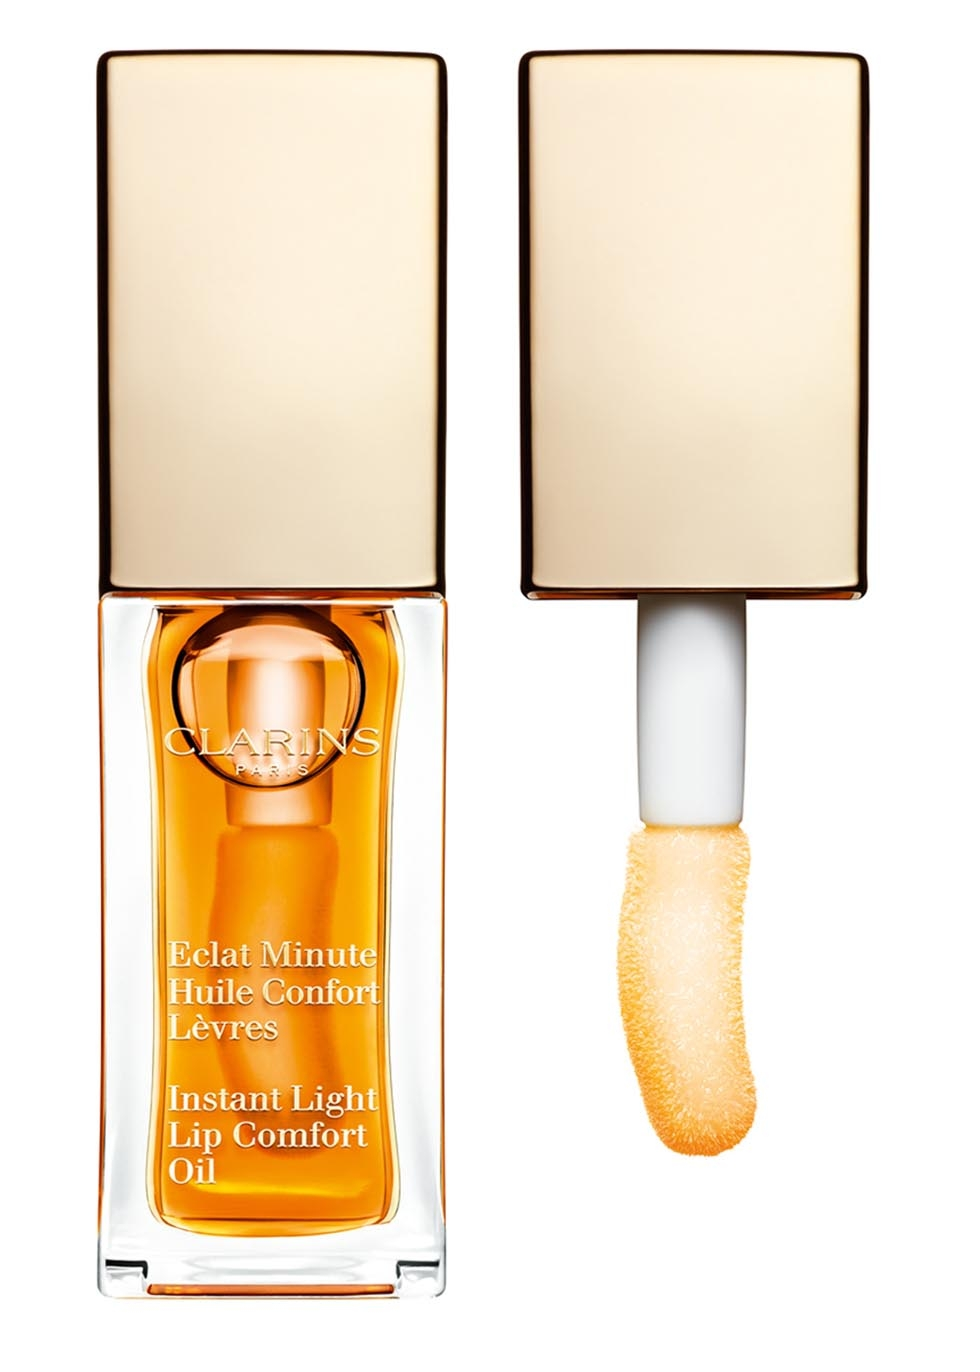 Clarins Instant Light Lip Comfort Oil in 01 Honey